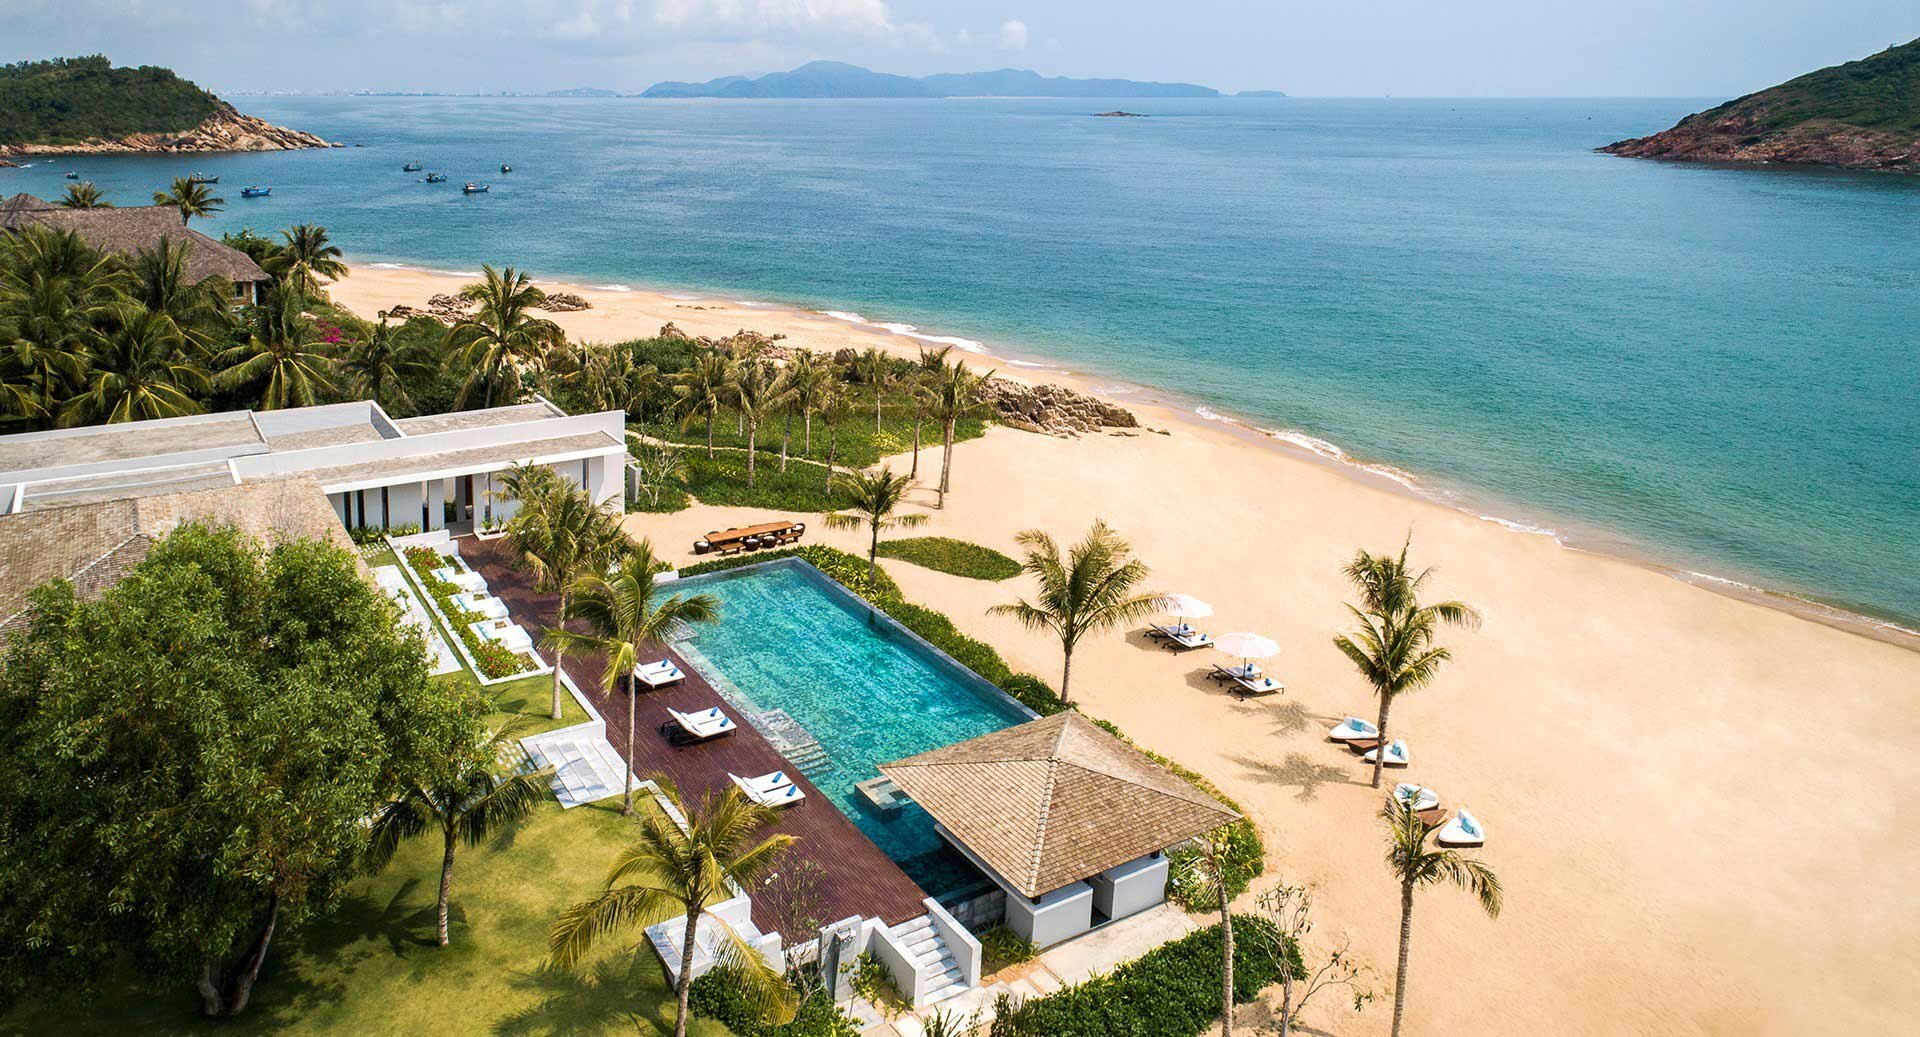 anantara_quy_nhon_villas_pool_aerial_with_beach.jpg